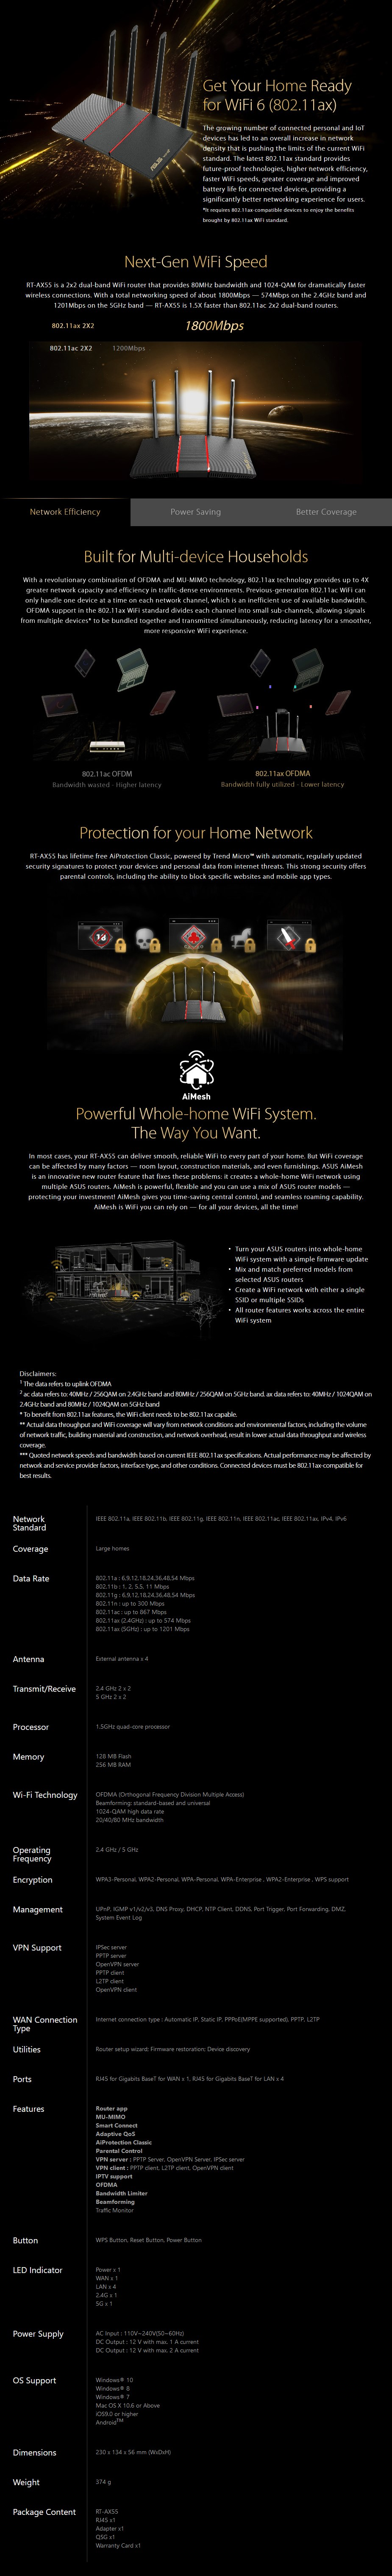 ASUS RT-AX55 AX1800 Dual Band MU-MIMO WiFi 6 Router - Overview 1